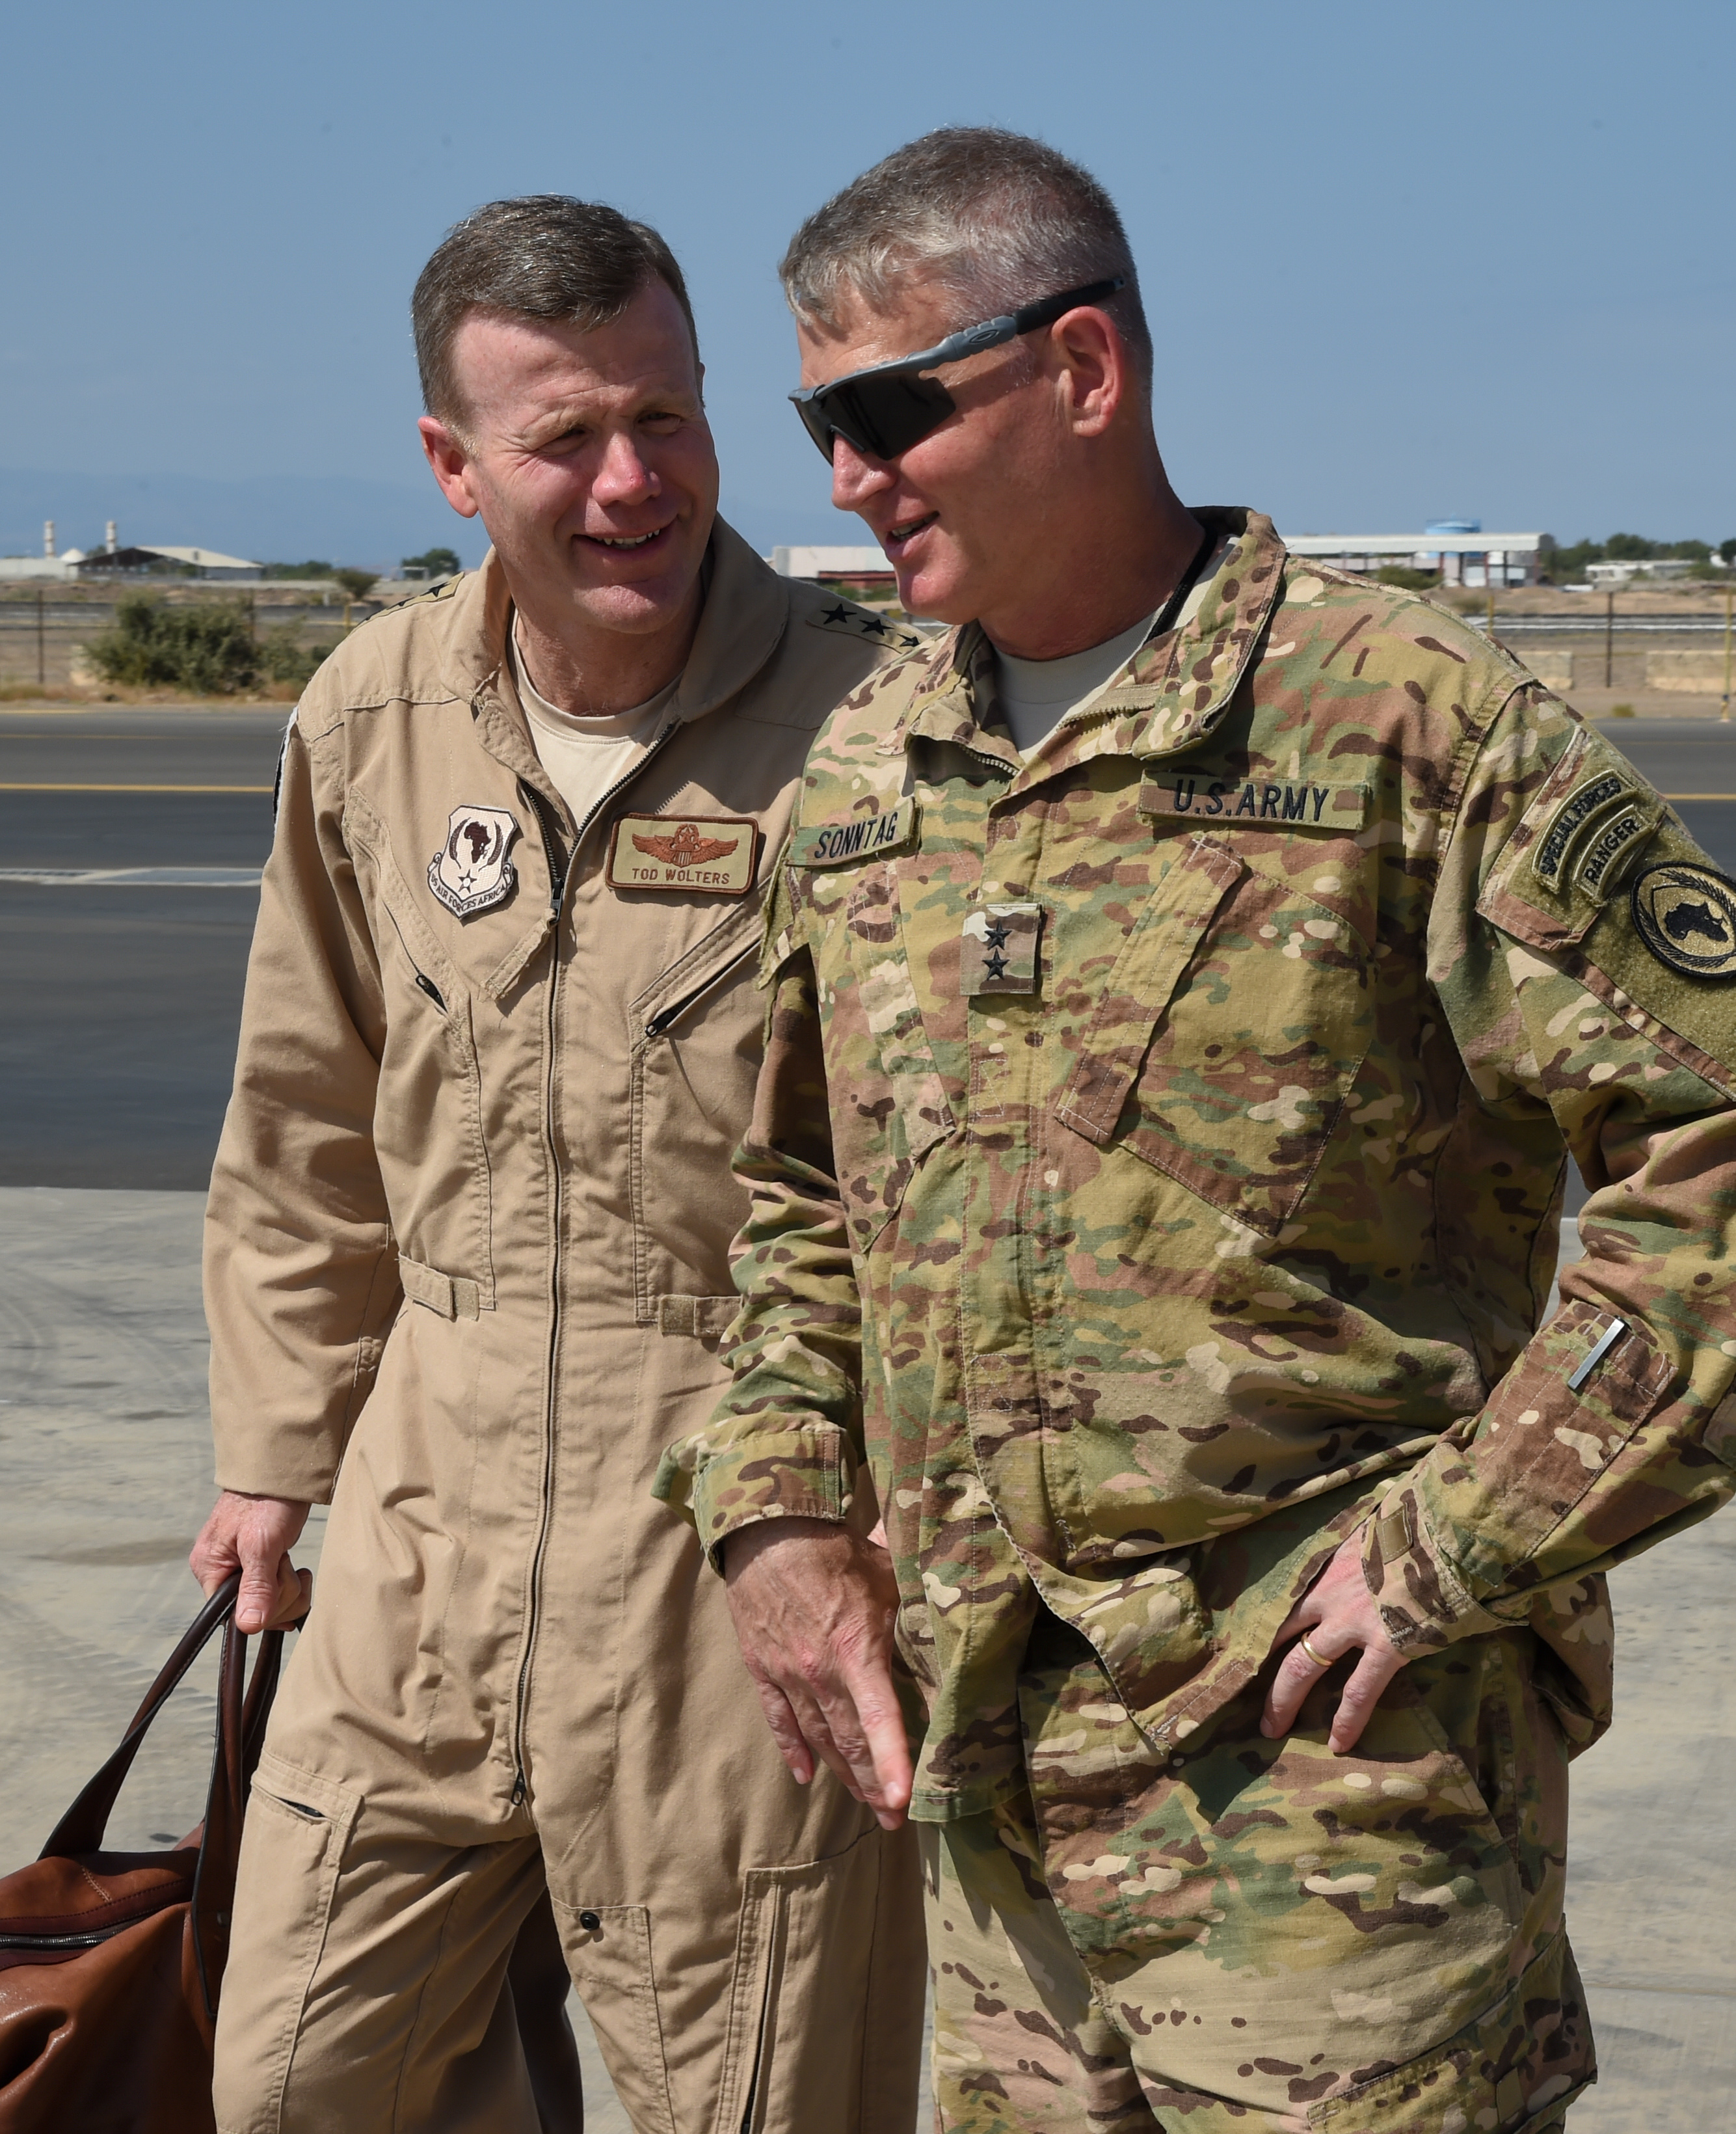 U.S. Air Force Gen. Tod Wolters, commander of U.S. Air Forces in Europe and Air Forces Africa (USAFE-AFAFRICA), walks with Maj. Gen. Kurt Sonntag, commander of Combined Joint Task Force-Horn of Africa, after his arrival at Camp Lemonnier, Djibouti, Feb. 1, 2017. One of the USAFE-AFAFRICA responsibilities is enabling NATO pledged Air Forces and supporting the peace and stability of African states. (U.S. Air National Guard photo by Staff Sgt. Penny Snoozy)